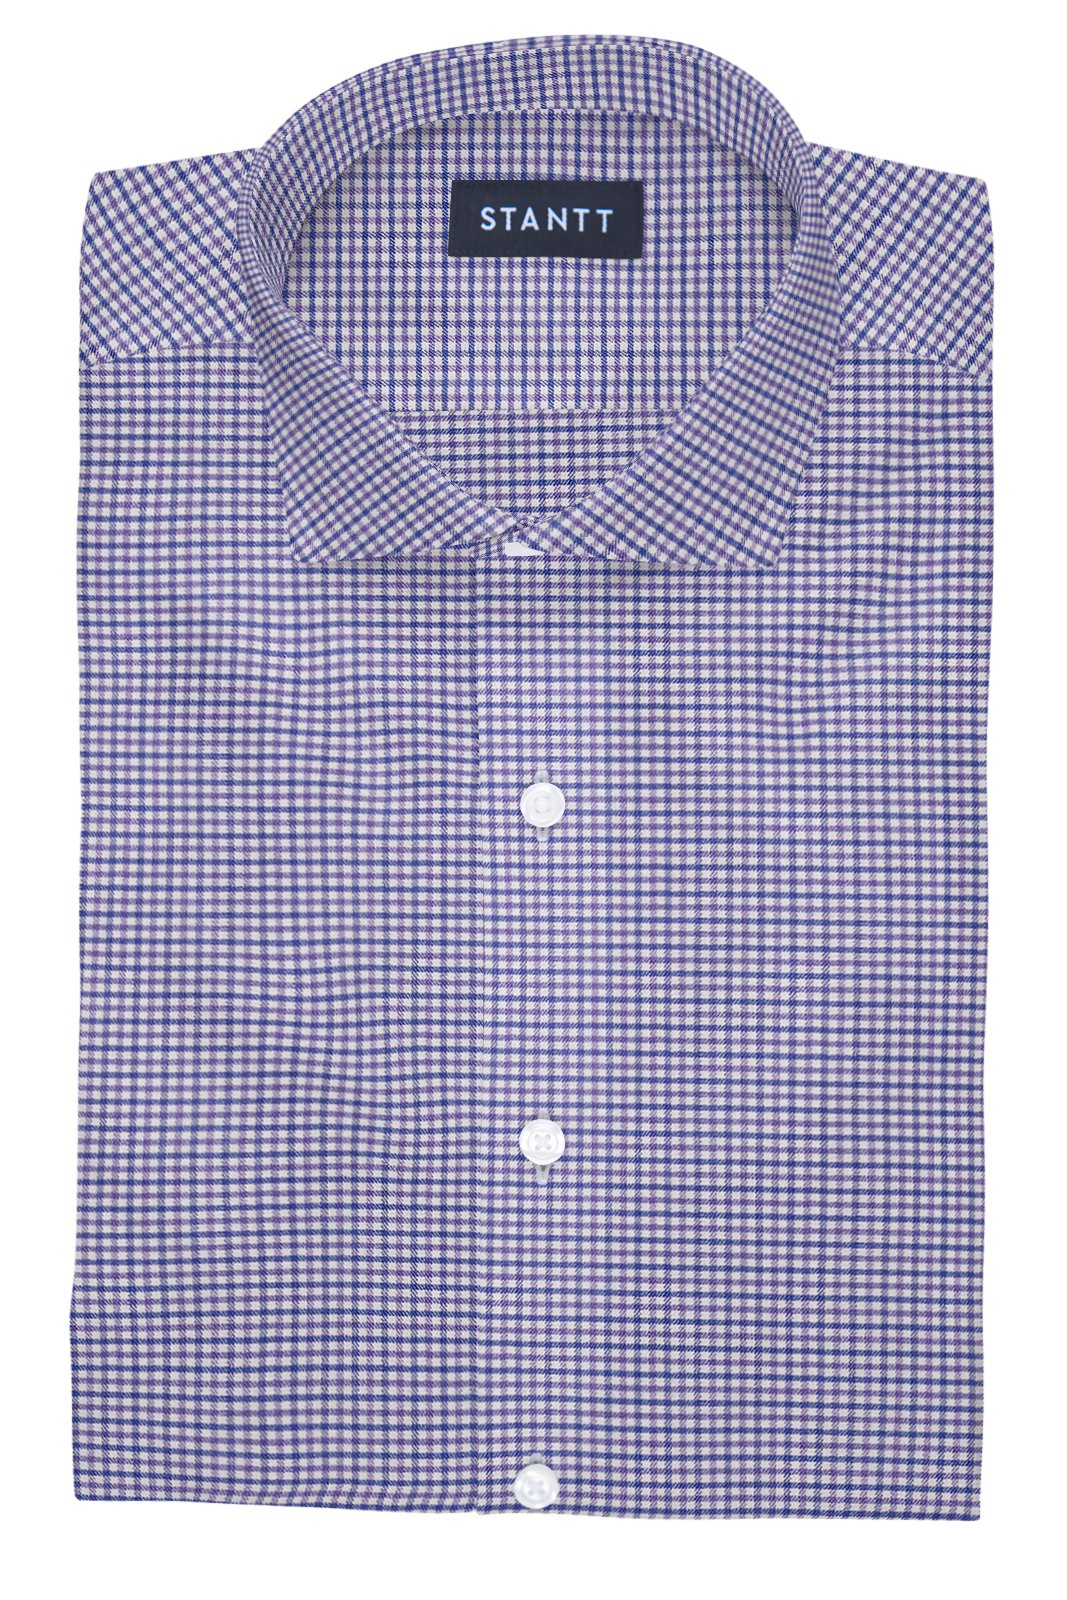 Performance Purple and Blue Mini Gingham: Cutaway Collar, Barrel Cuff